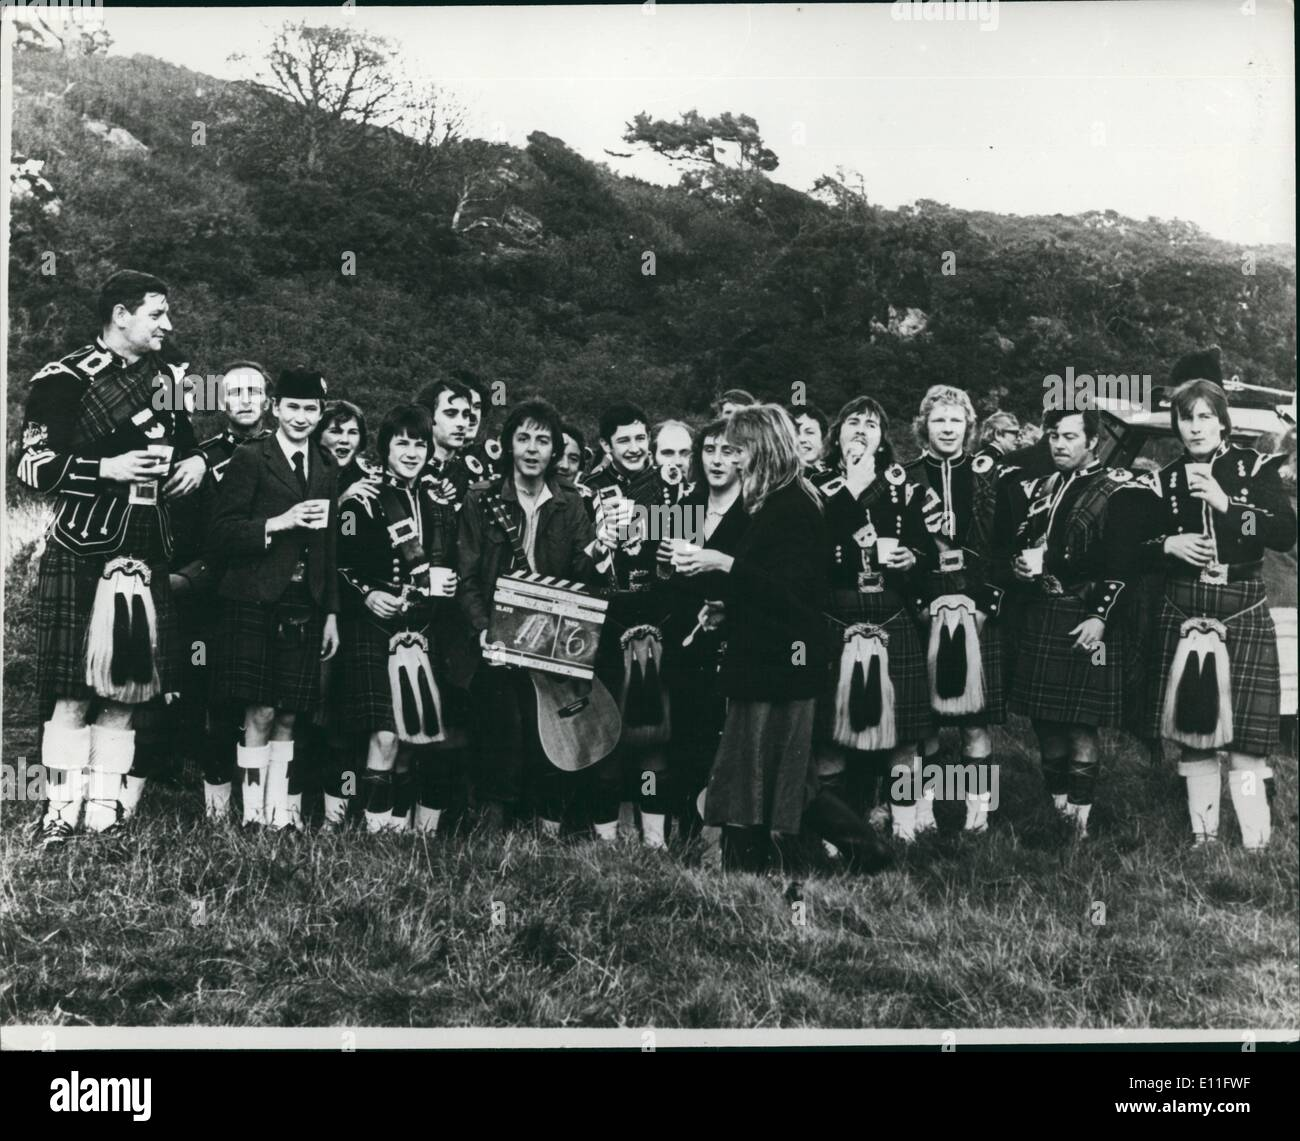 Nov. 11, 1977 - Wings Over Scotland: Paul McCartney's band, Wings, have recently been recording in Scotland, the ''Mull of Kintyre ''has been named after the headland on the West Coast of Scotland so of course it has a strong Scottish flavour. Photo shows Paul, Linda and Denny of Wings with the entire complement of the Cambeltown Pipe Band during filming for the promotional film for the ''Mull of Kintyre Stock Photo